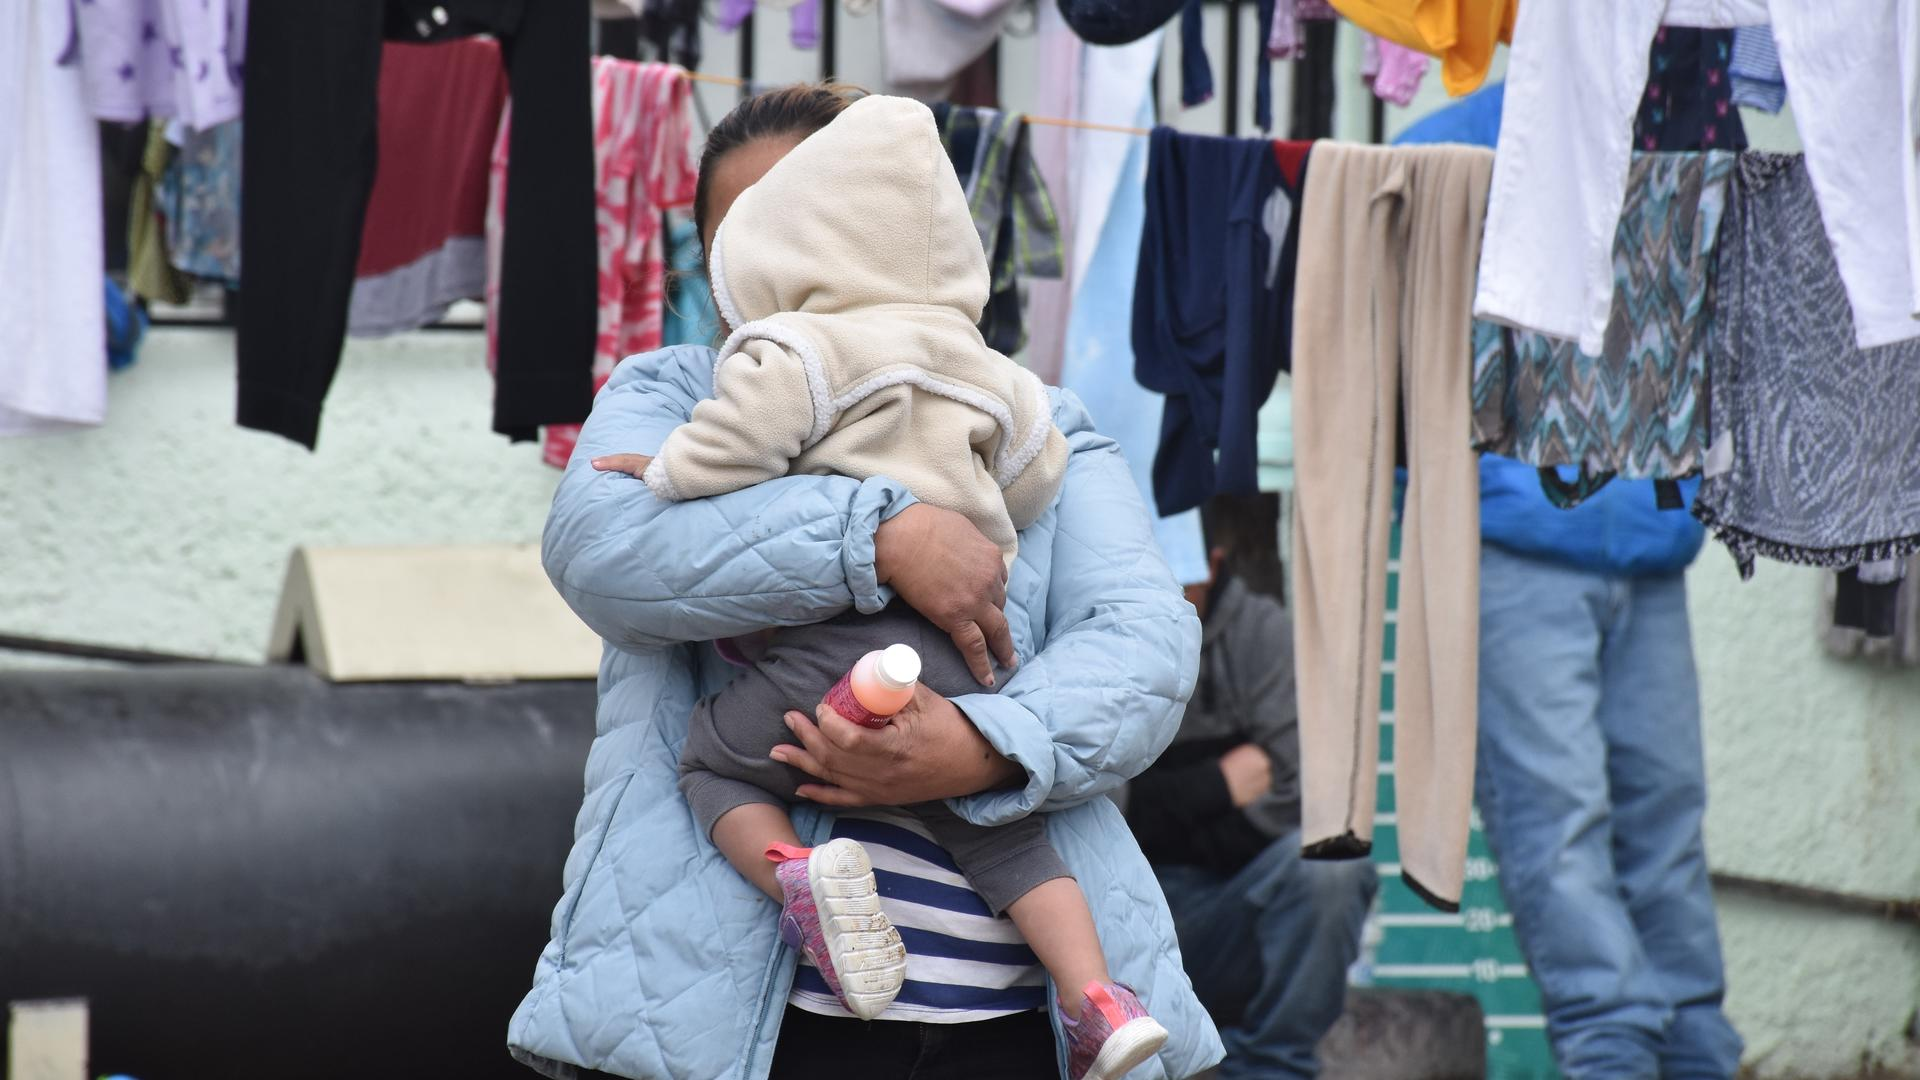 Alma, an asylum seeker from Guatemala, and her daughter wait for their laundry to dry in the outdoor living space of a shelter in Ciudad Juarez.